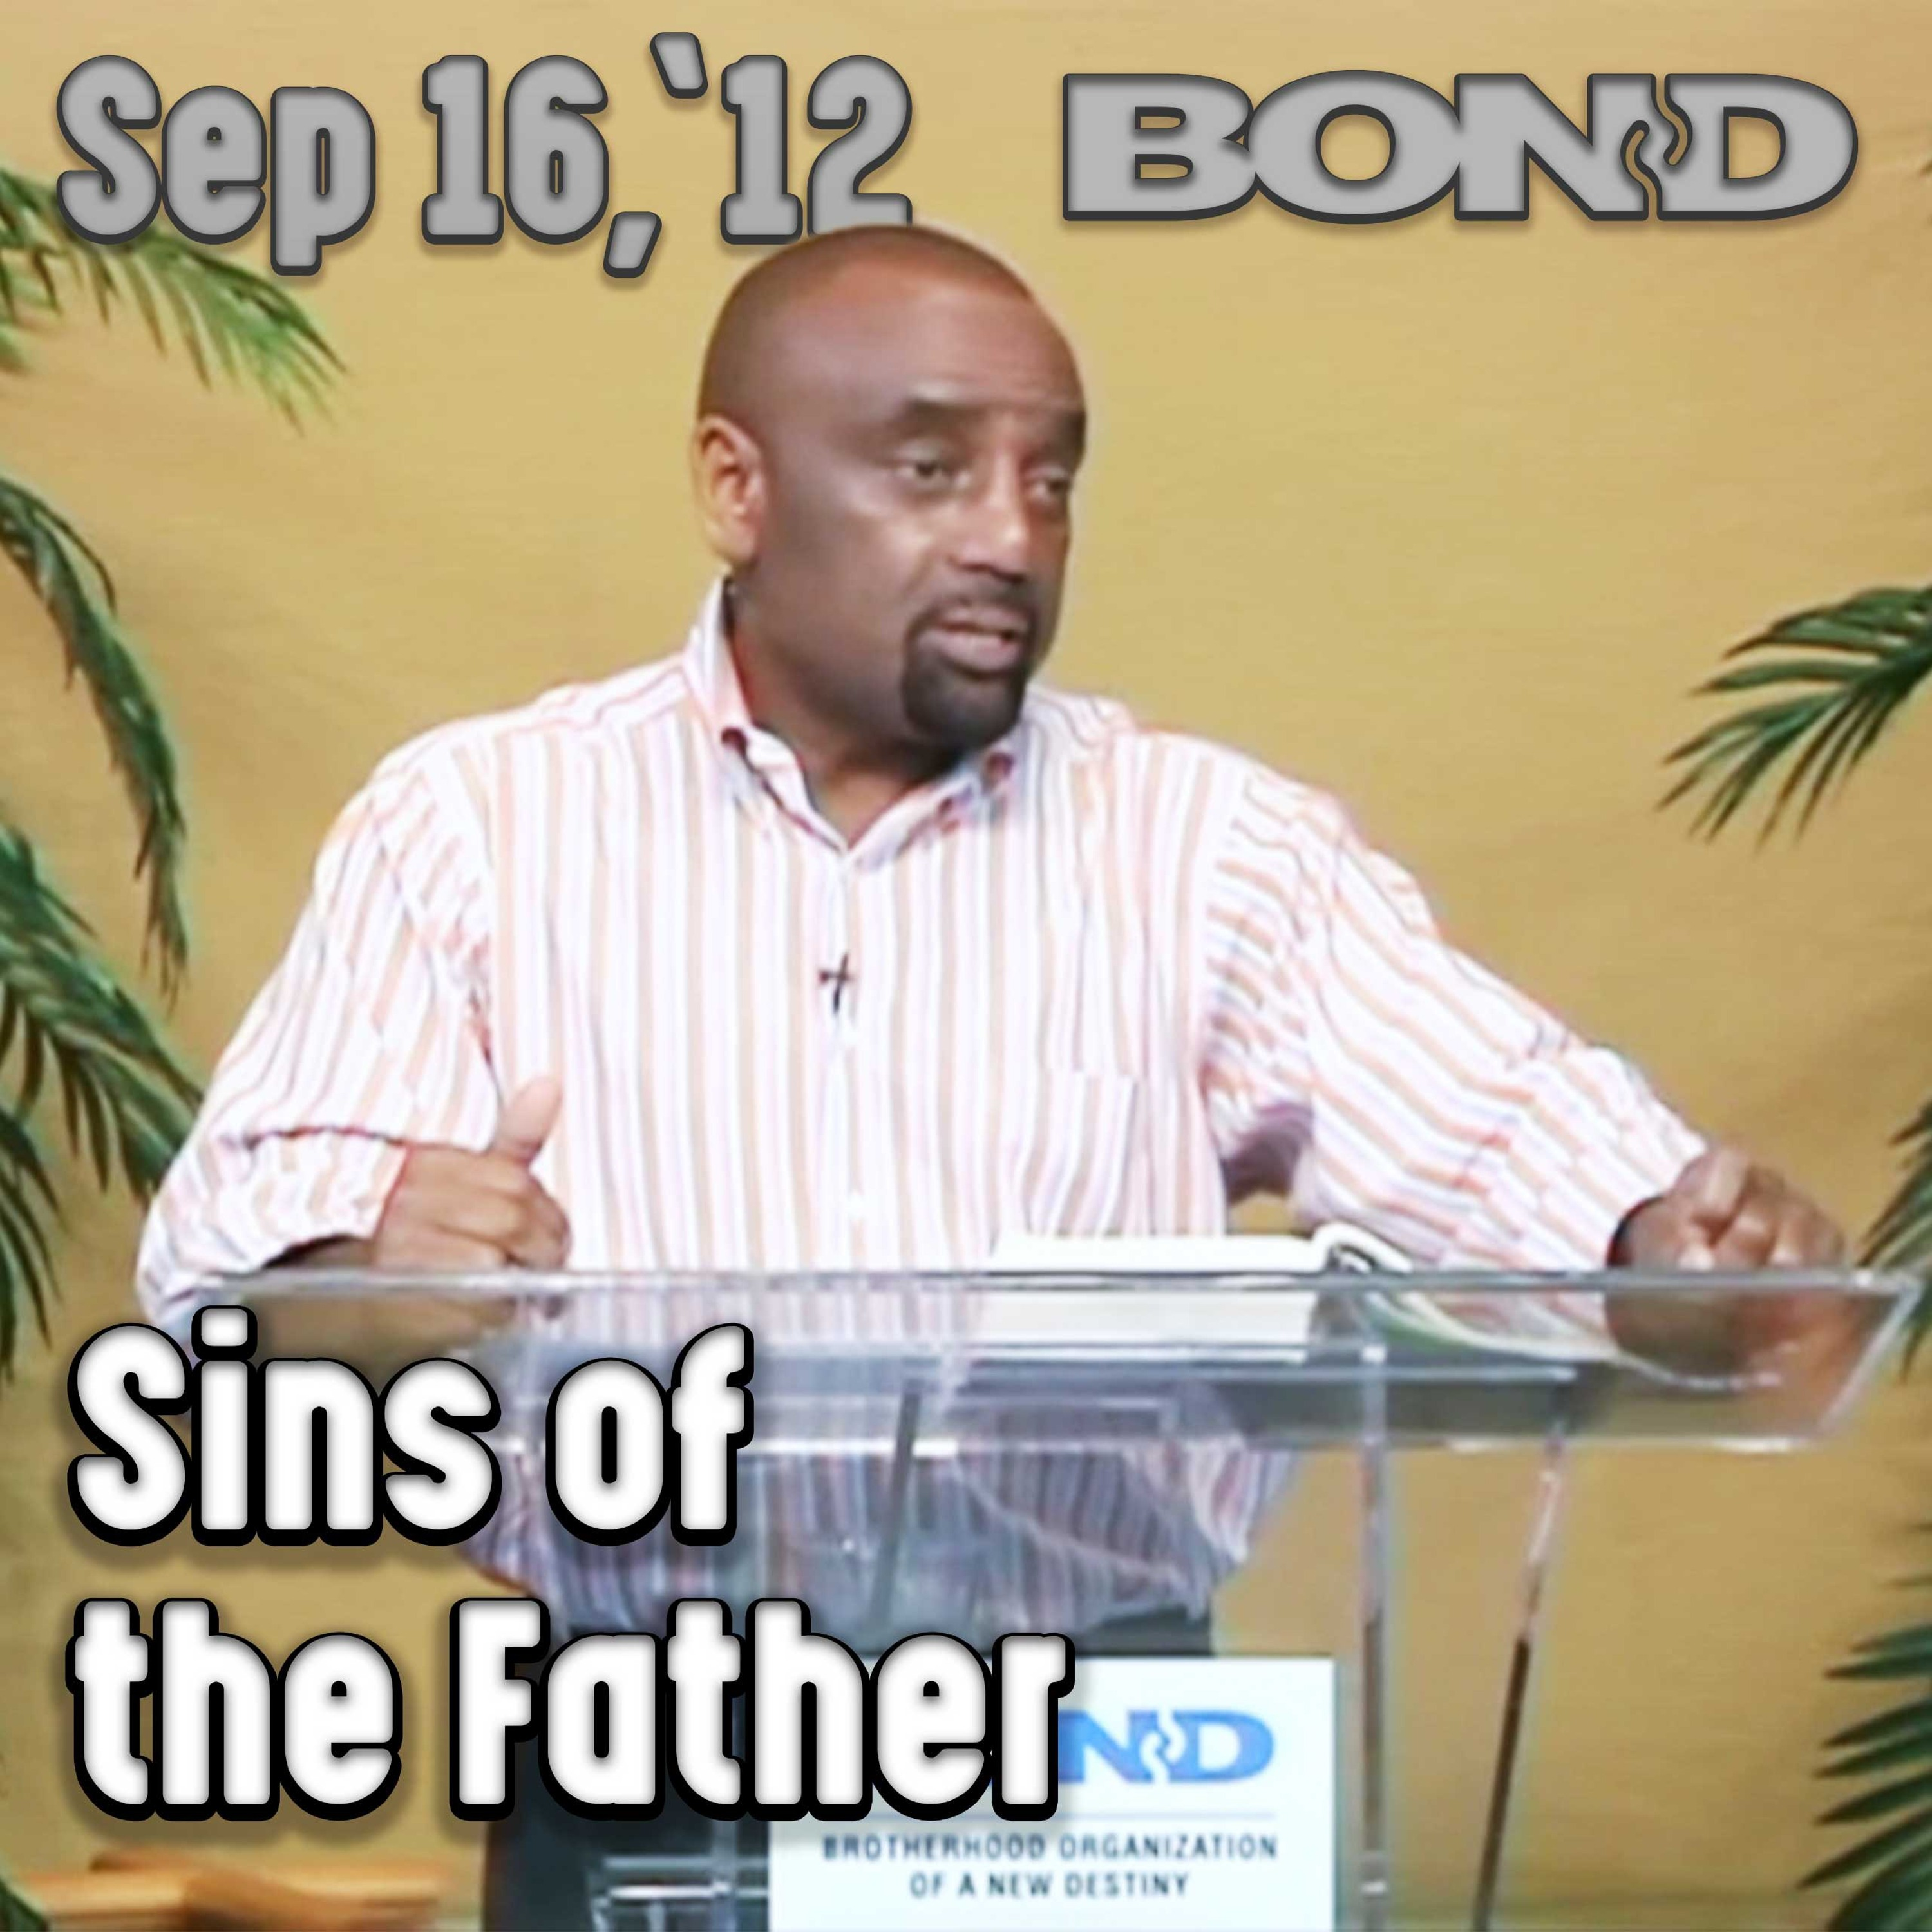 09/16/12 Sin and Its Impact on Your Life and the World (Archive)